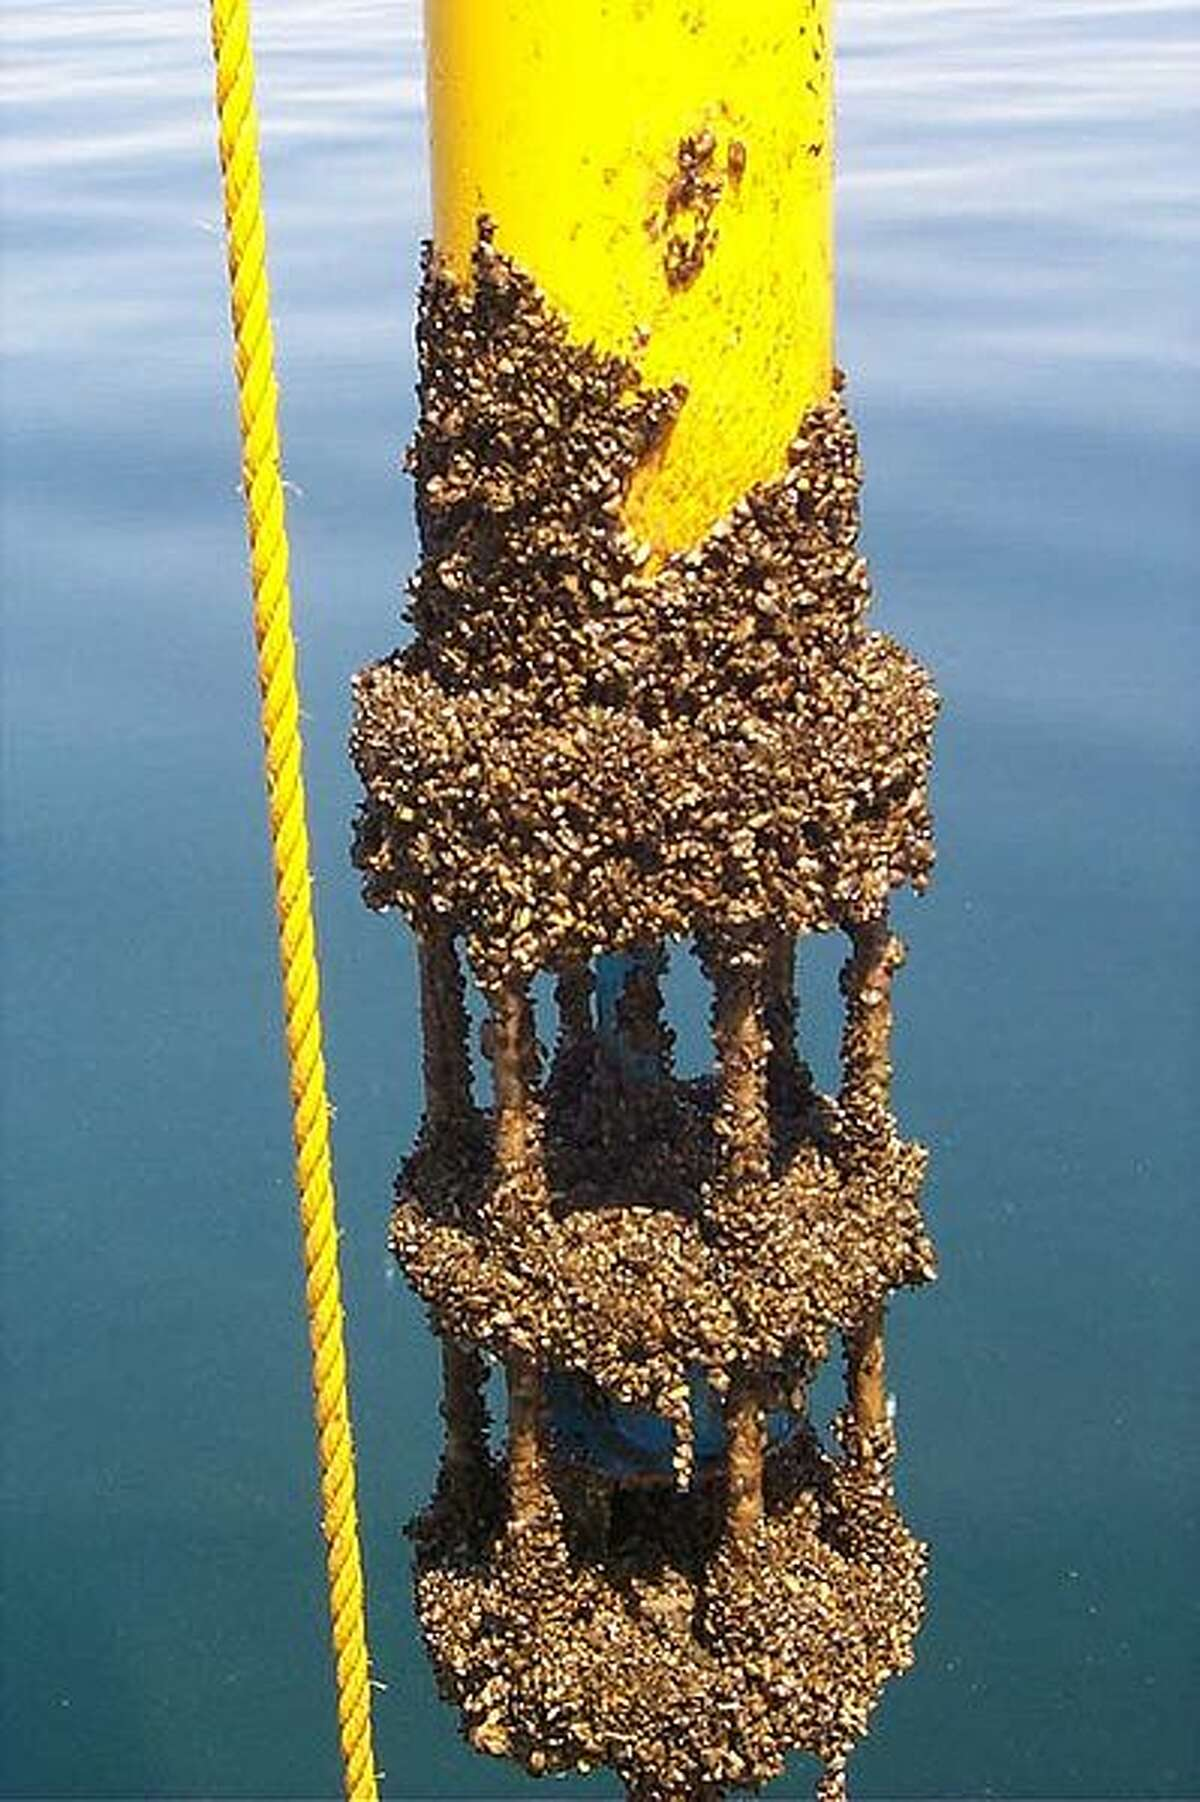 Invasive zebra mussels are infesting Texas lakes, TPWD says